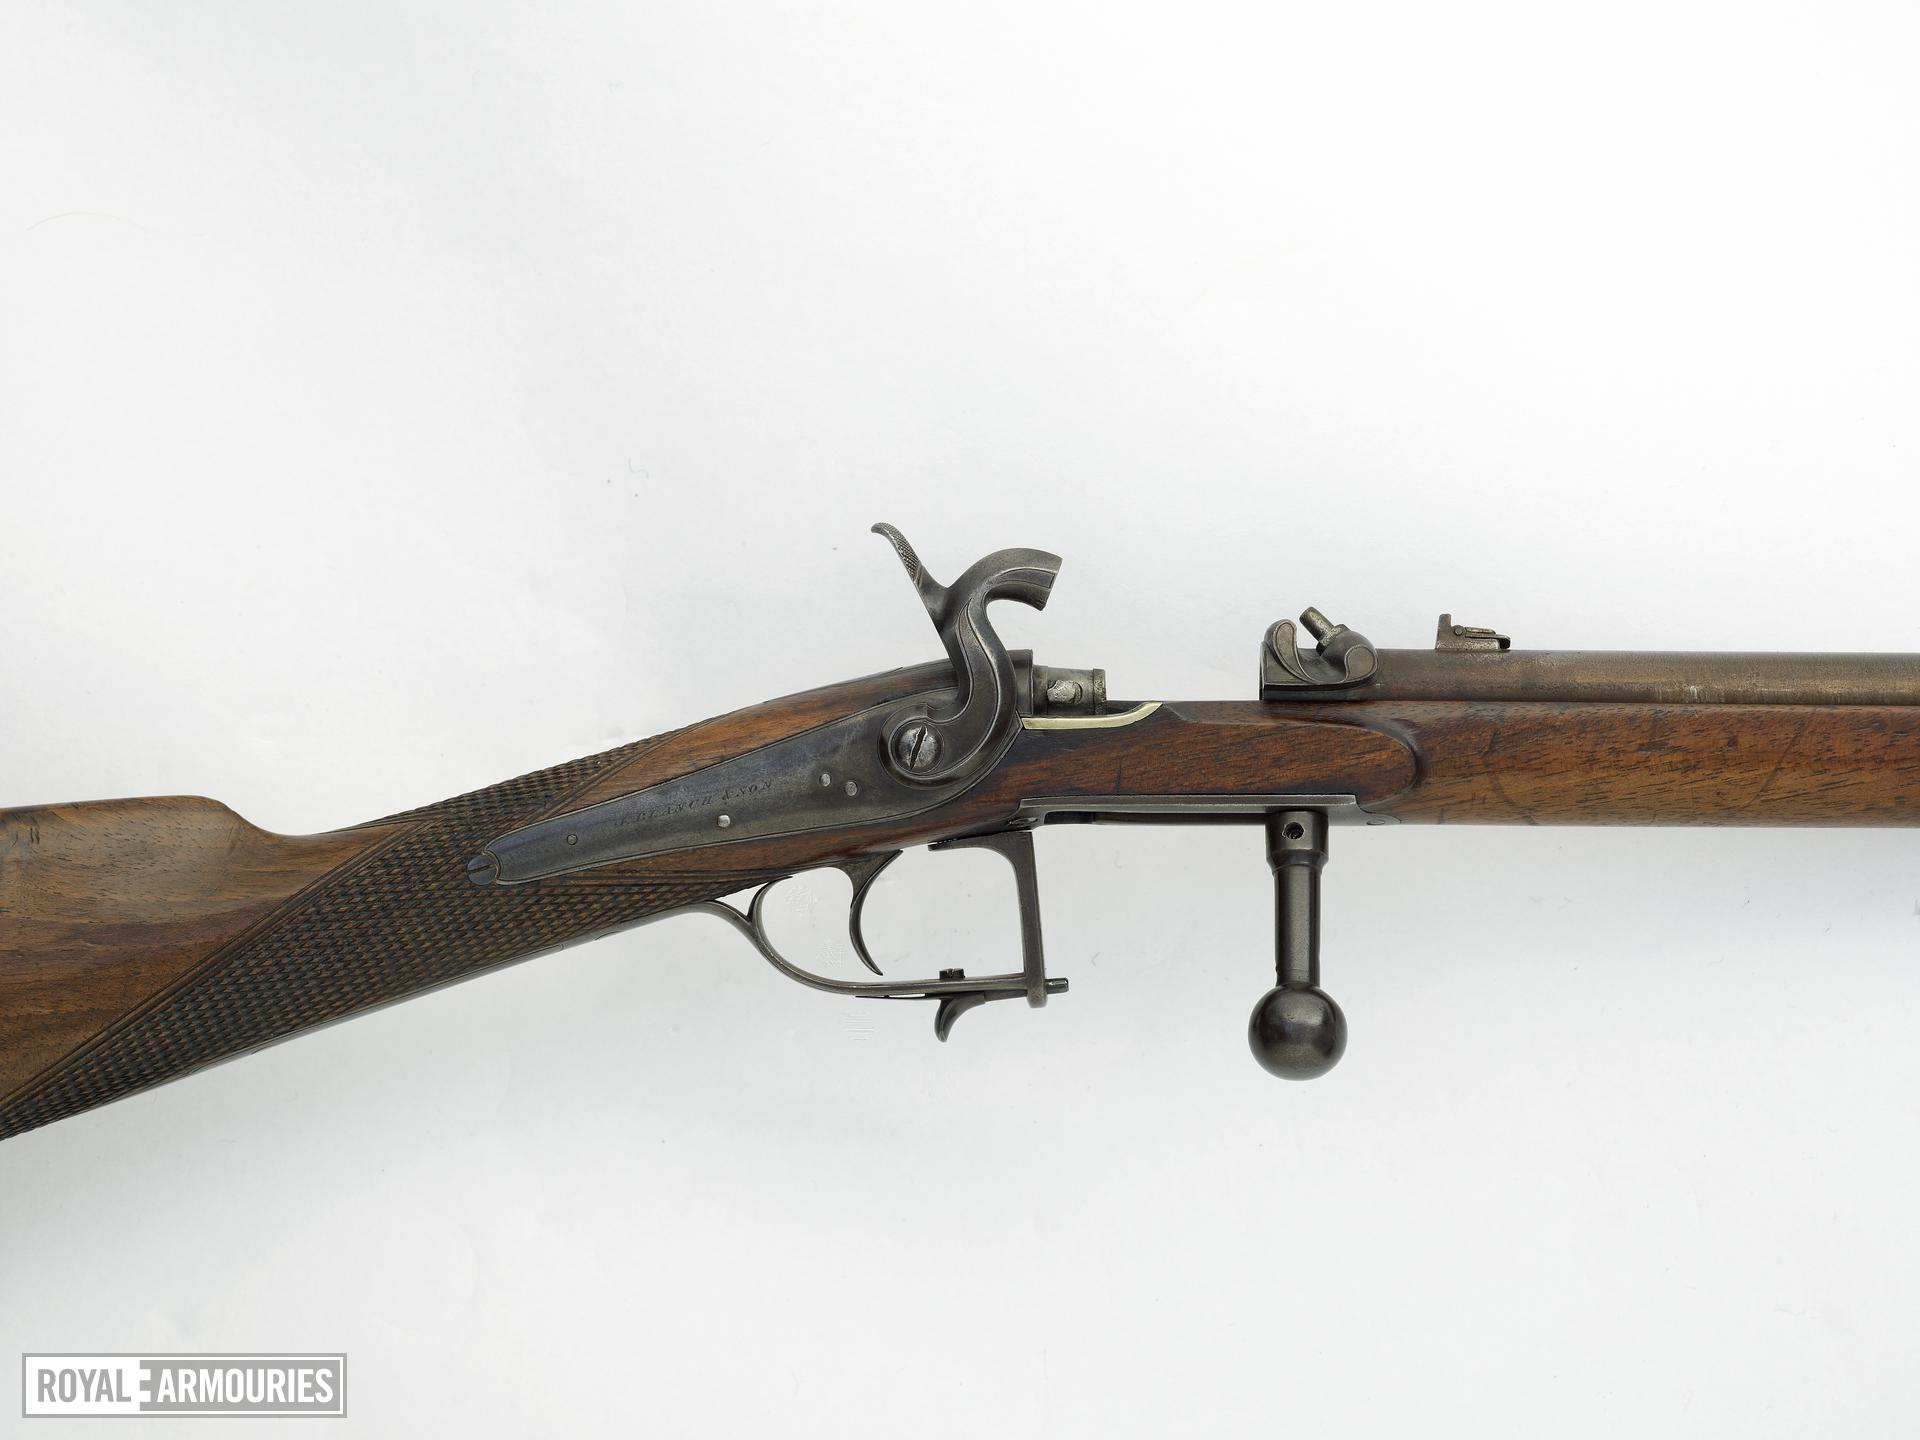 Percussion breech-loading rifle - By J. Blanch and Son